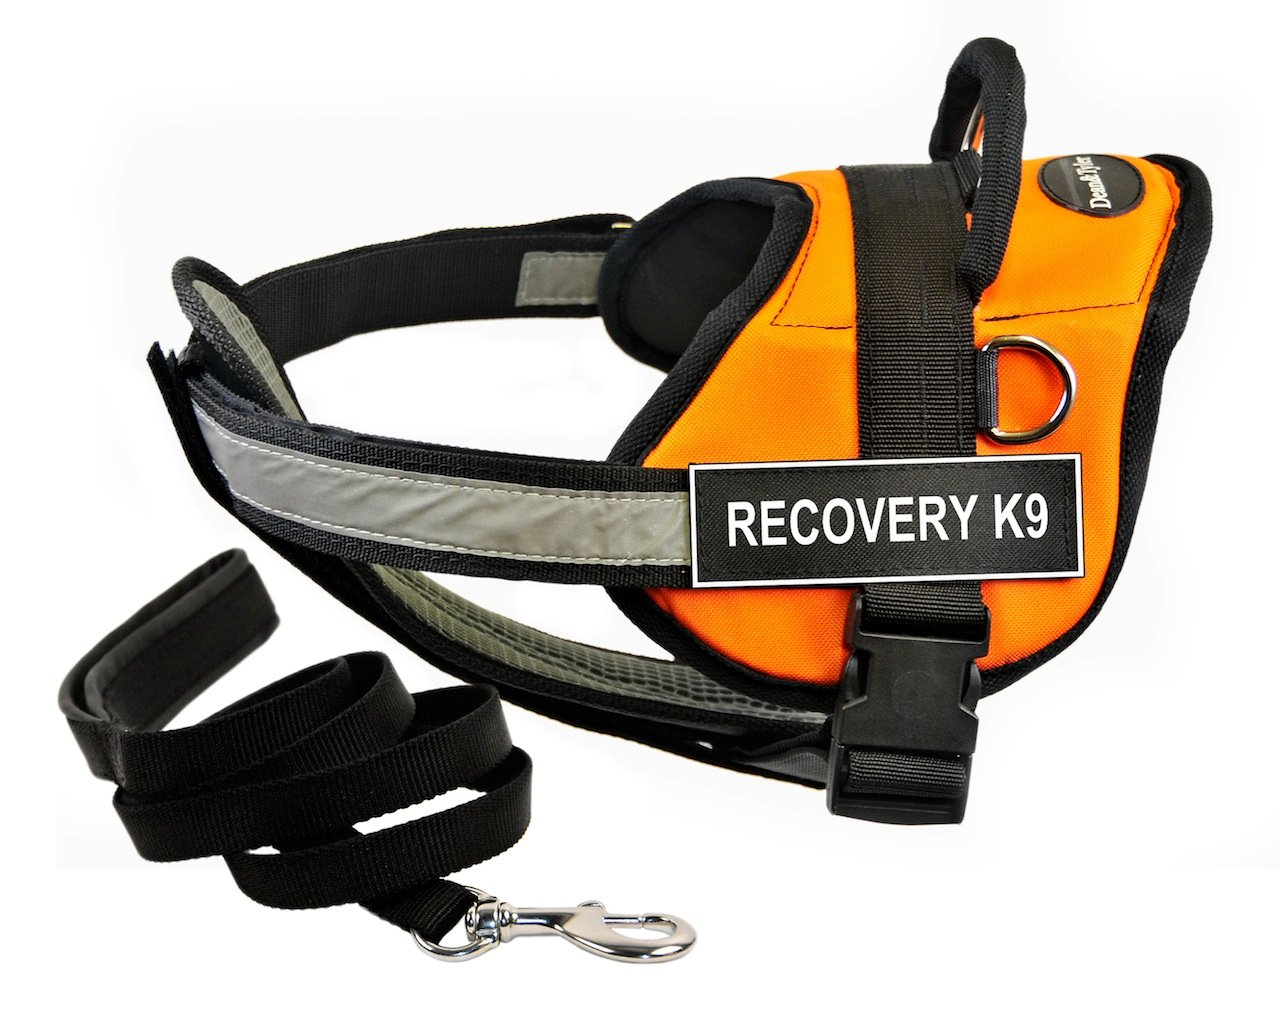 Dean & Tyler DT Works orange RECOVERY K9 Harness with Chest Padding, X-Small, and Black 6 ft Padded Puppy Leash.